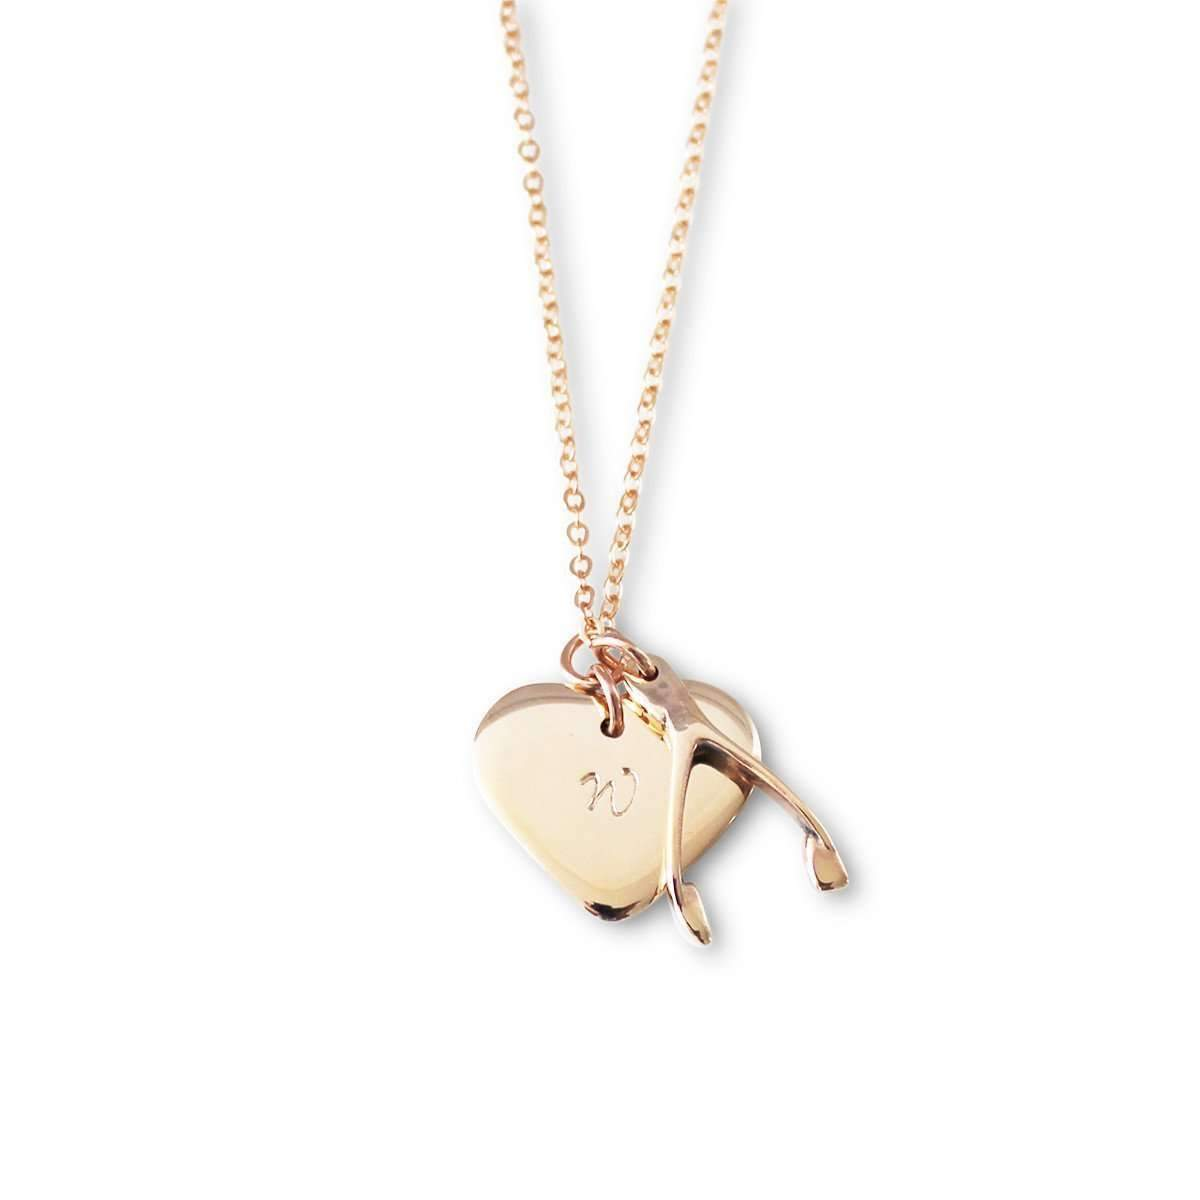 9kt Rose Gold Personalized Lucky Necklace